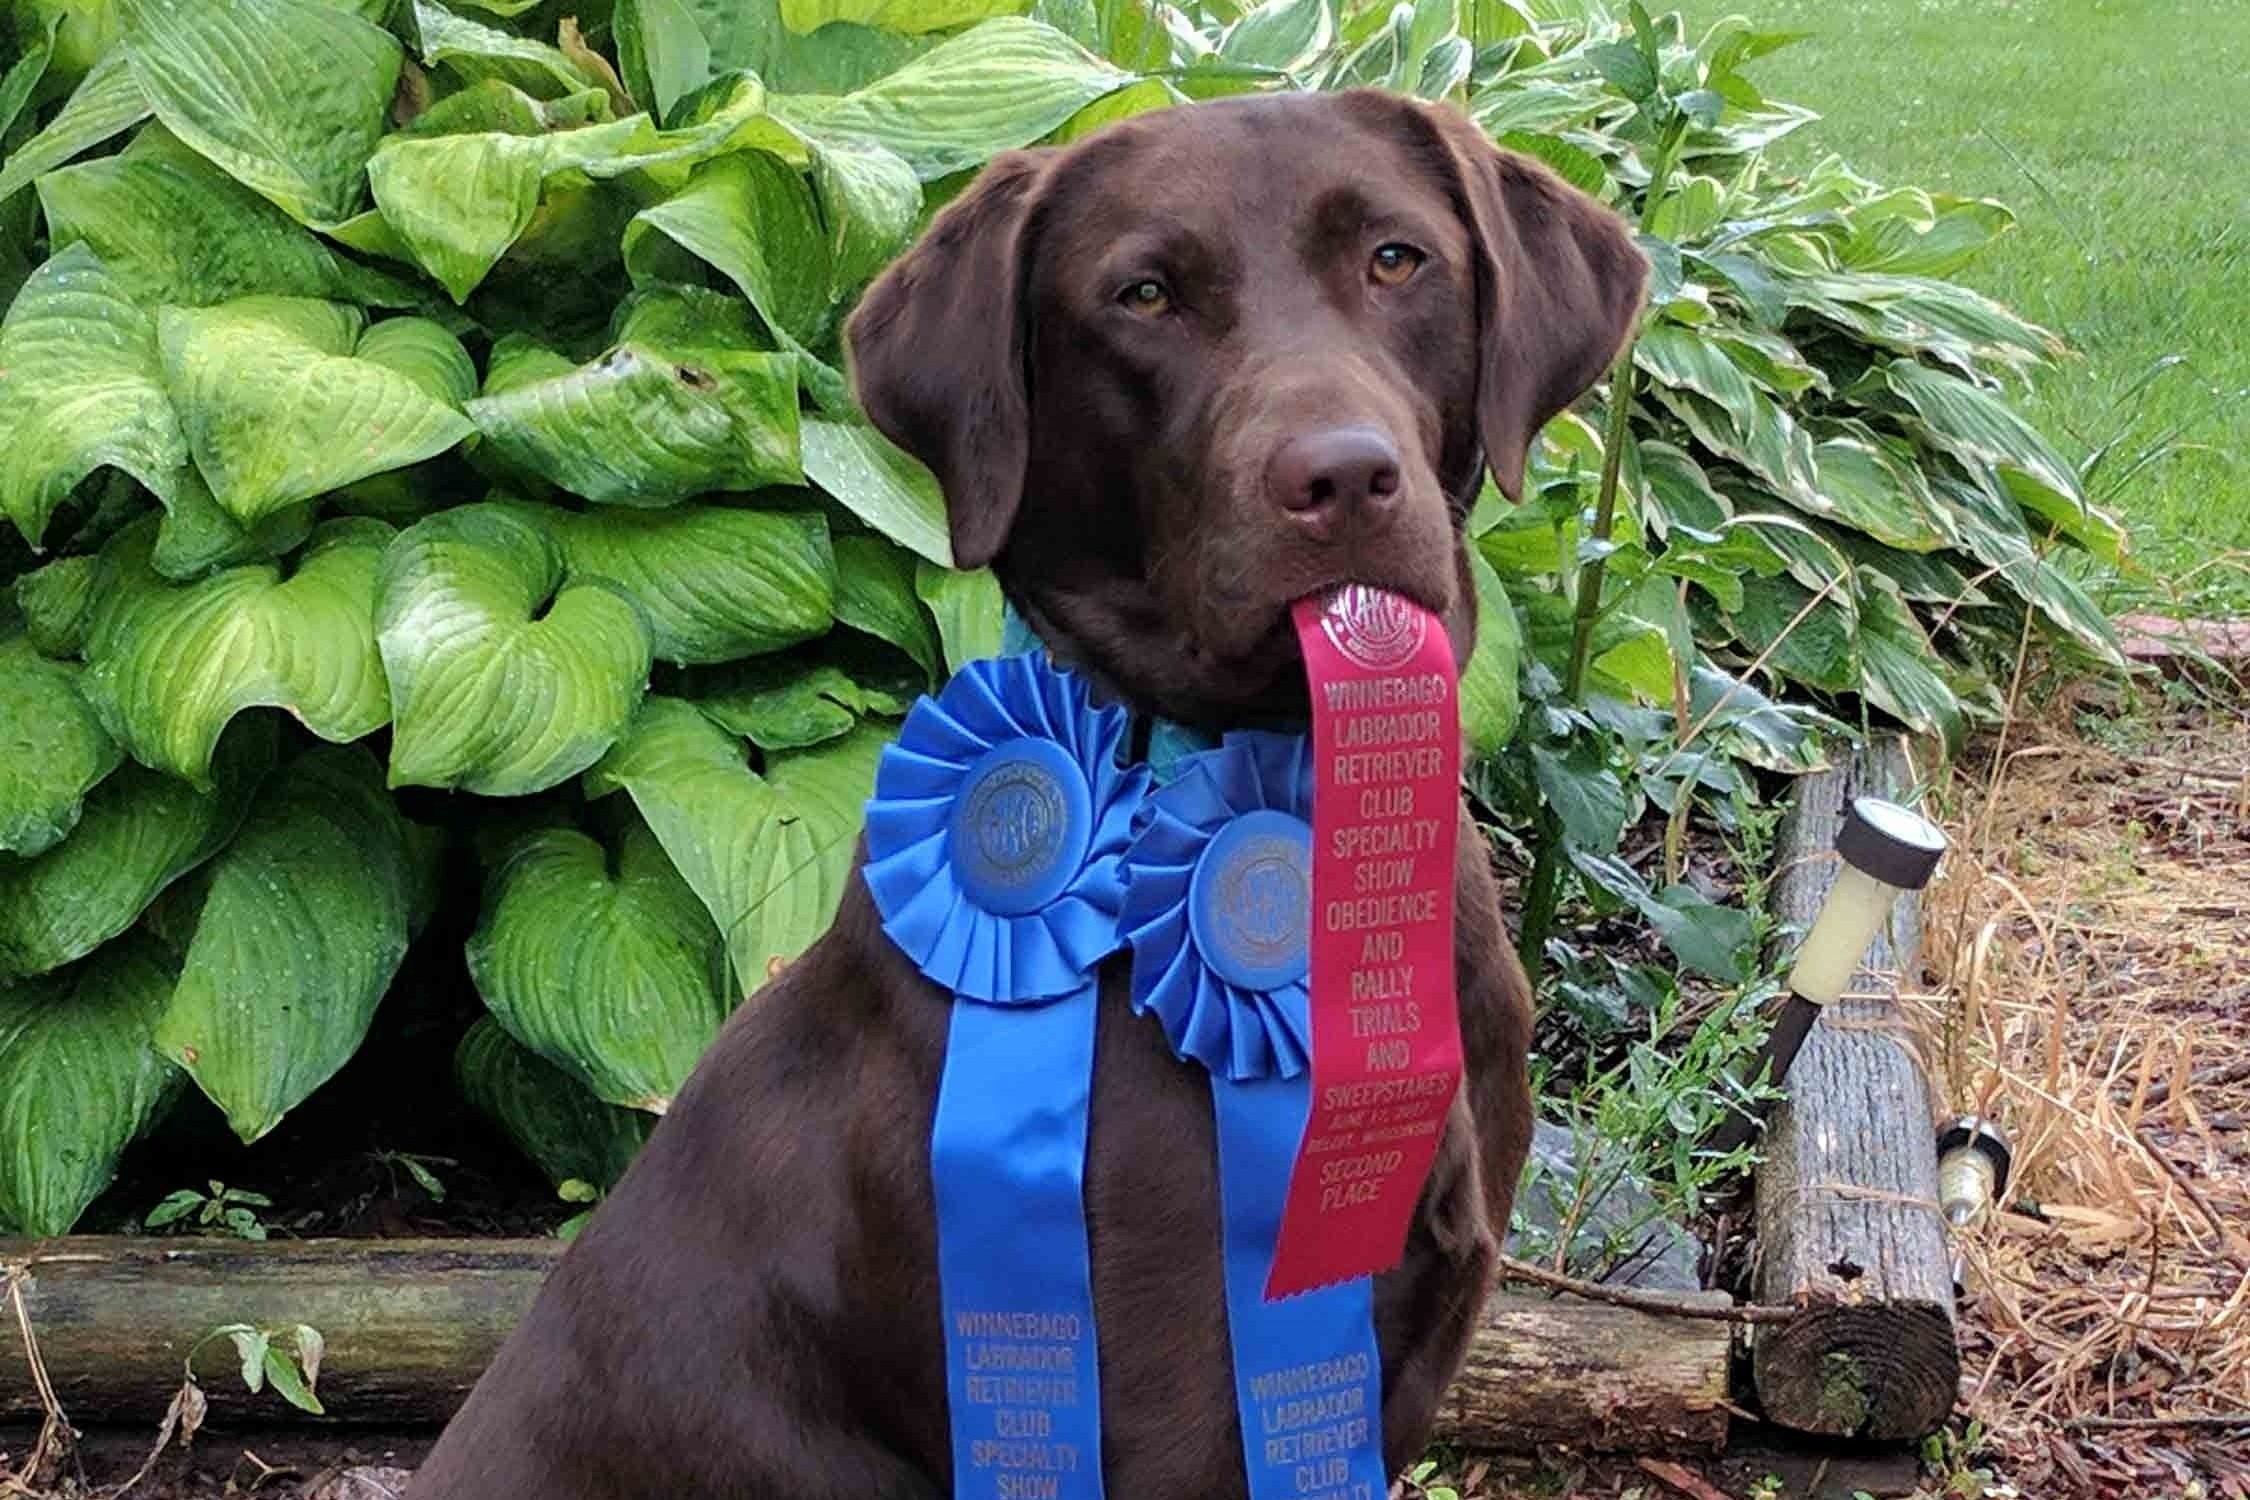 Tracy Harper - Owner & TrainerTracy has over 40 years training and competing dogs at all levels of obedience and rally. Additionally, for the past 15 years she has trained and competed dogs in Hunt Tests.Creative, positive, fun solutions are her specialty.